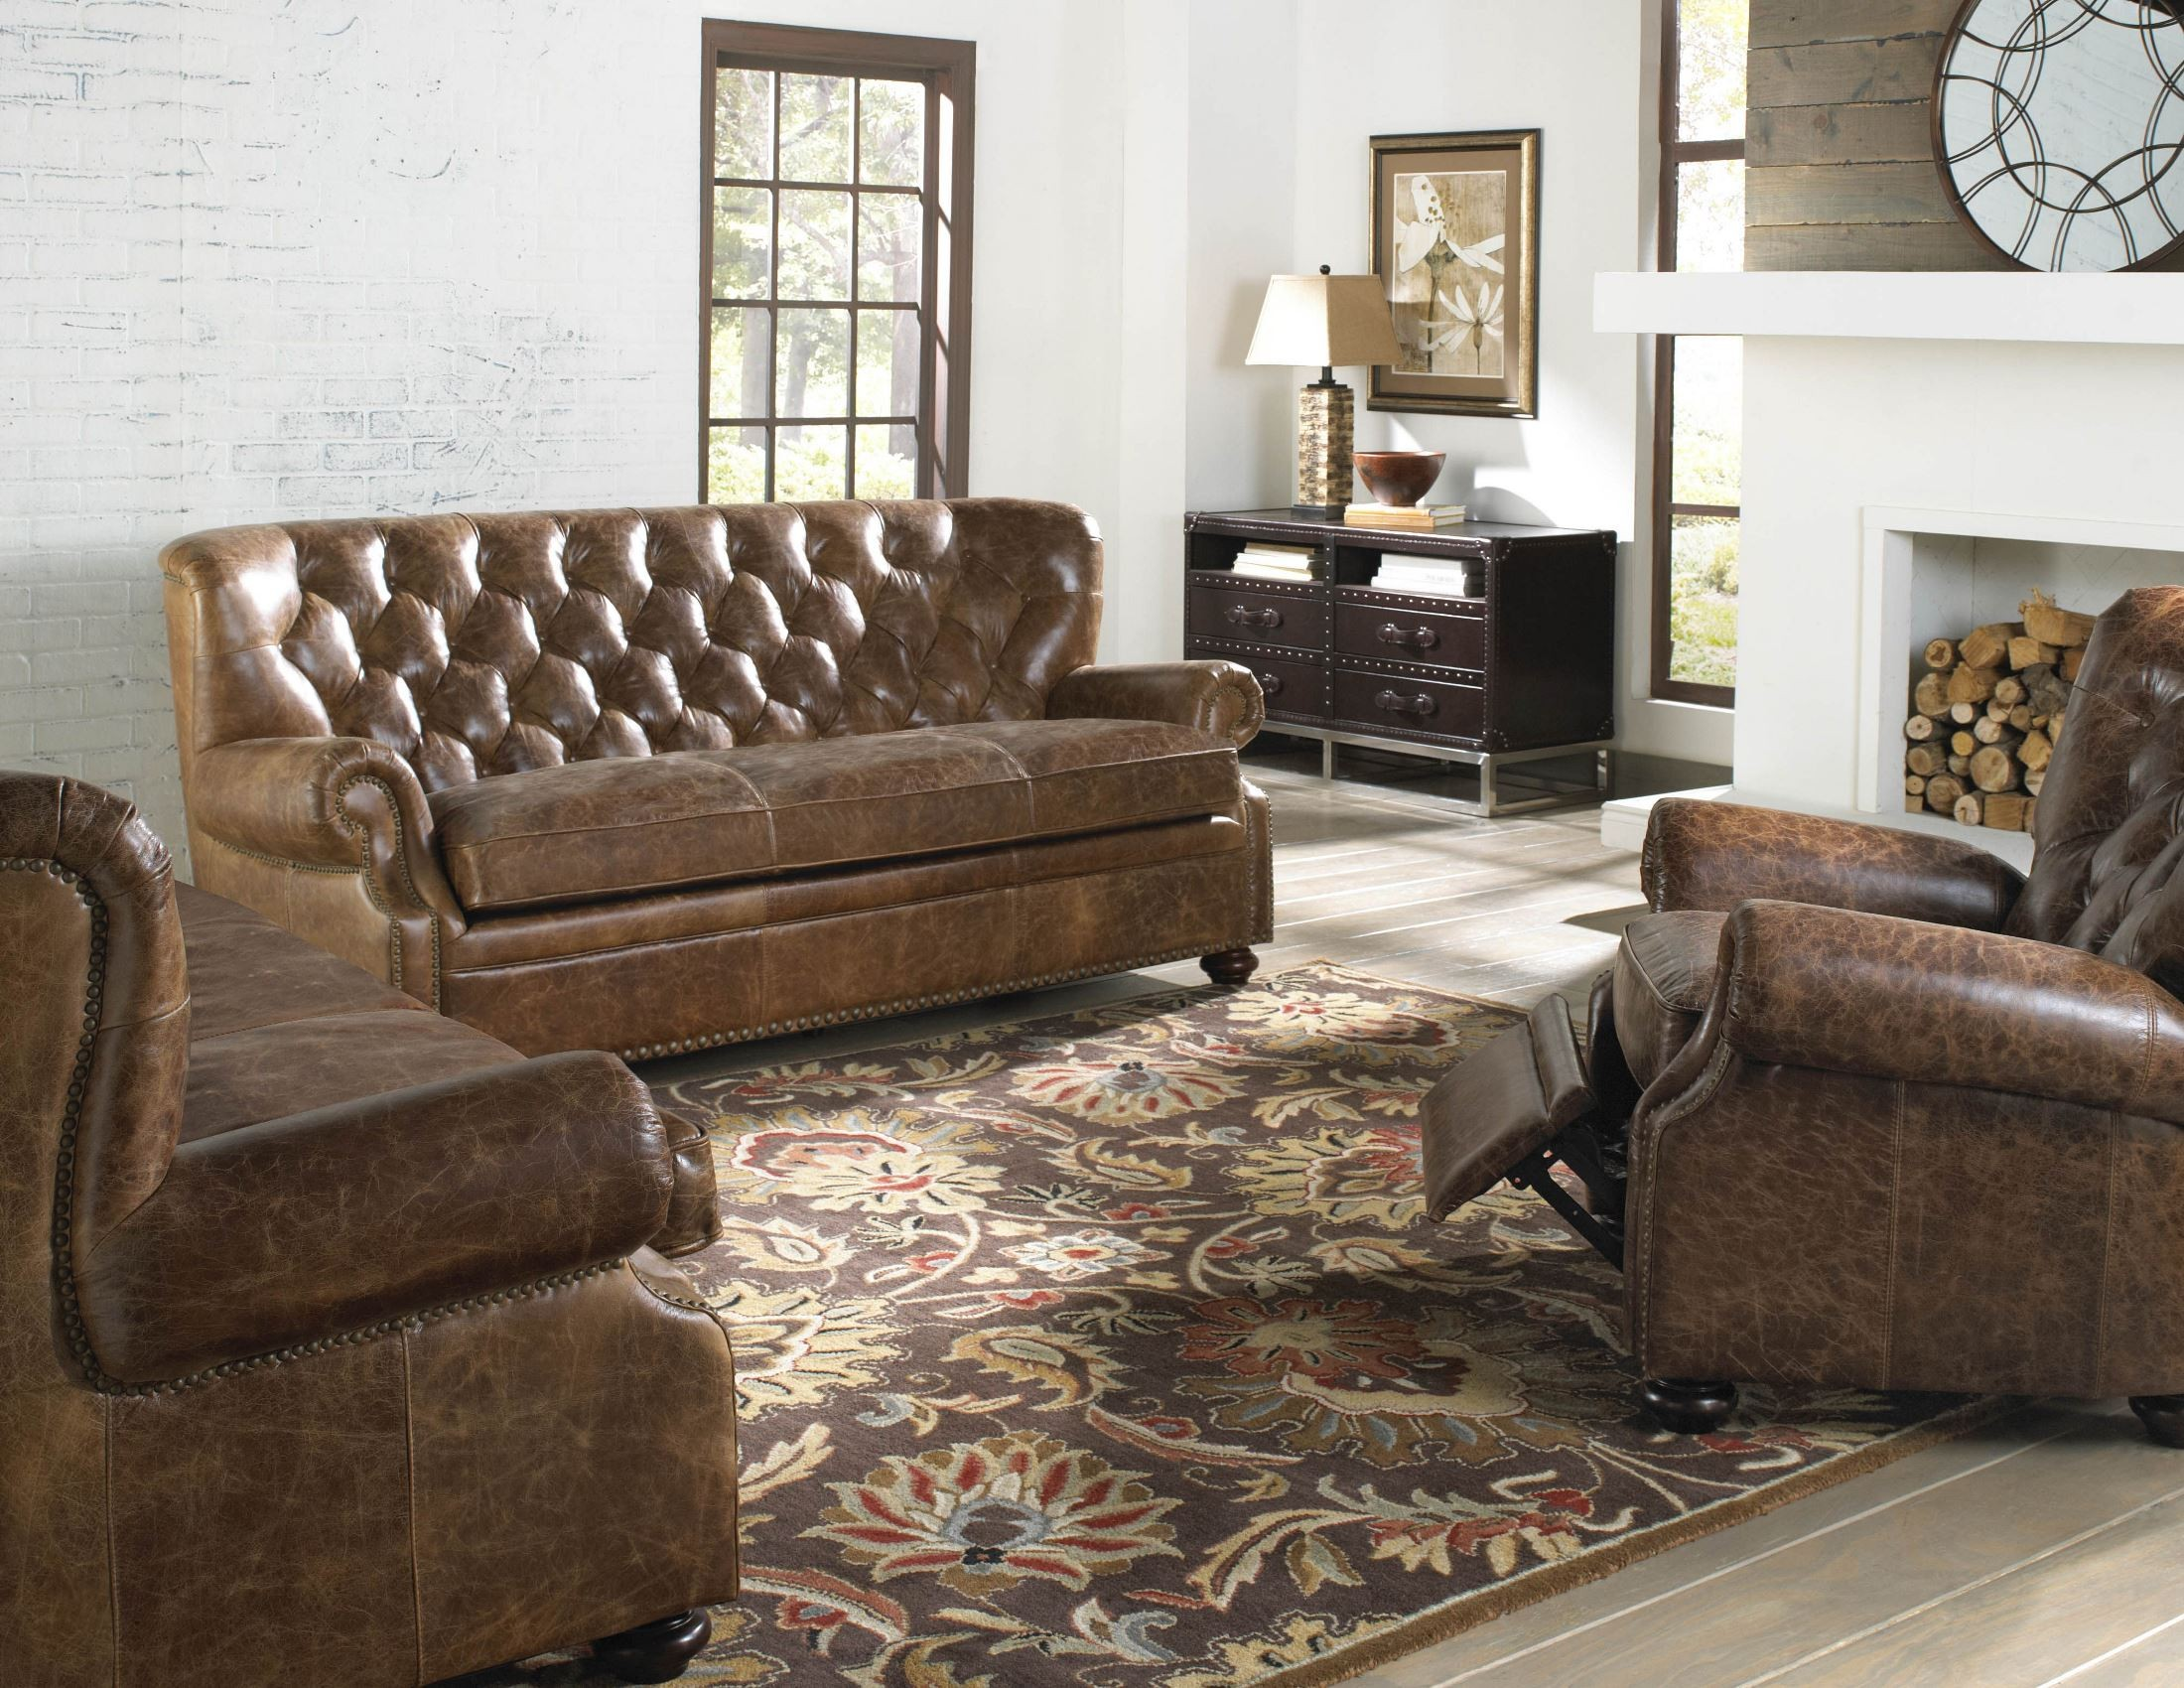 Louis Coco Brompton Leather Living Room Set From Lazzaro Wh 1435 30 9021 Coleman Furniture